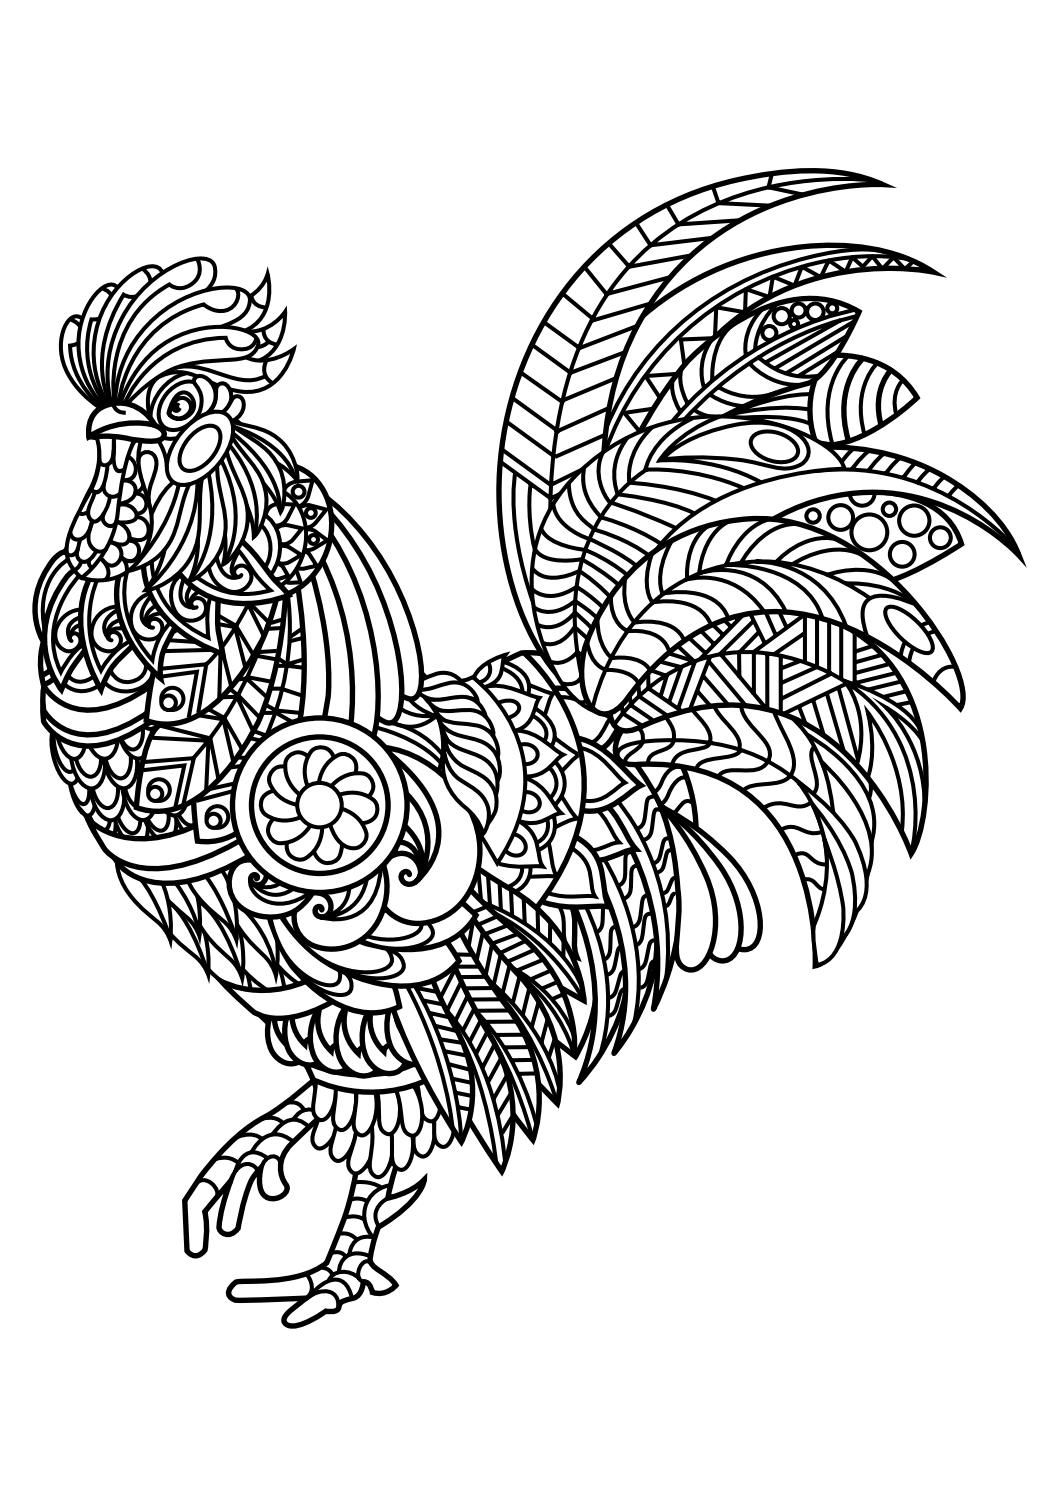 animal coloring pages pdf coloring birds and feathers bird coloring pages mandala. Black Bedroom Furniture Sets. Home Design Ideas